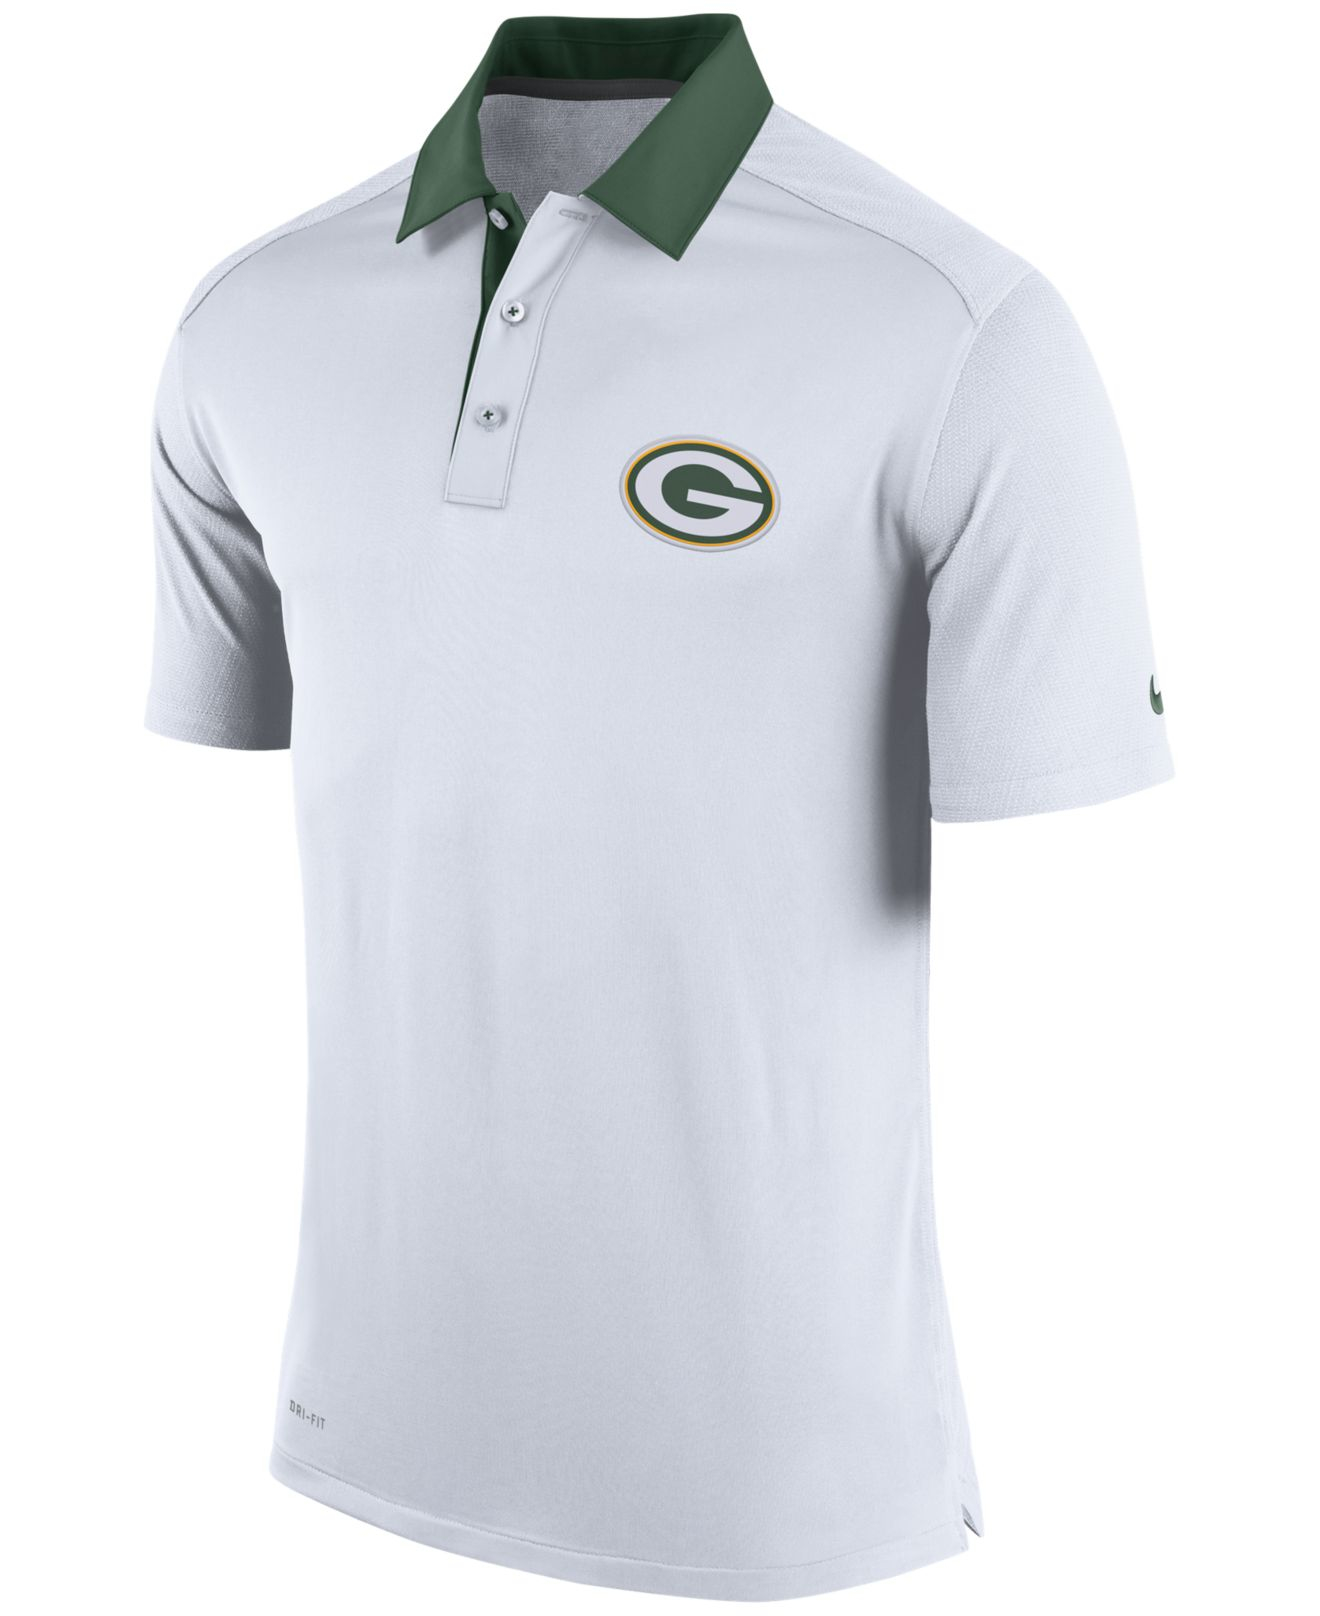 Lyst - Nike Men s Green Bay Packers Elite Coaches Polo in White for Men 2a8c566a3